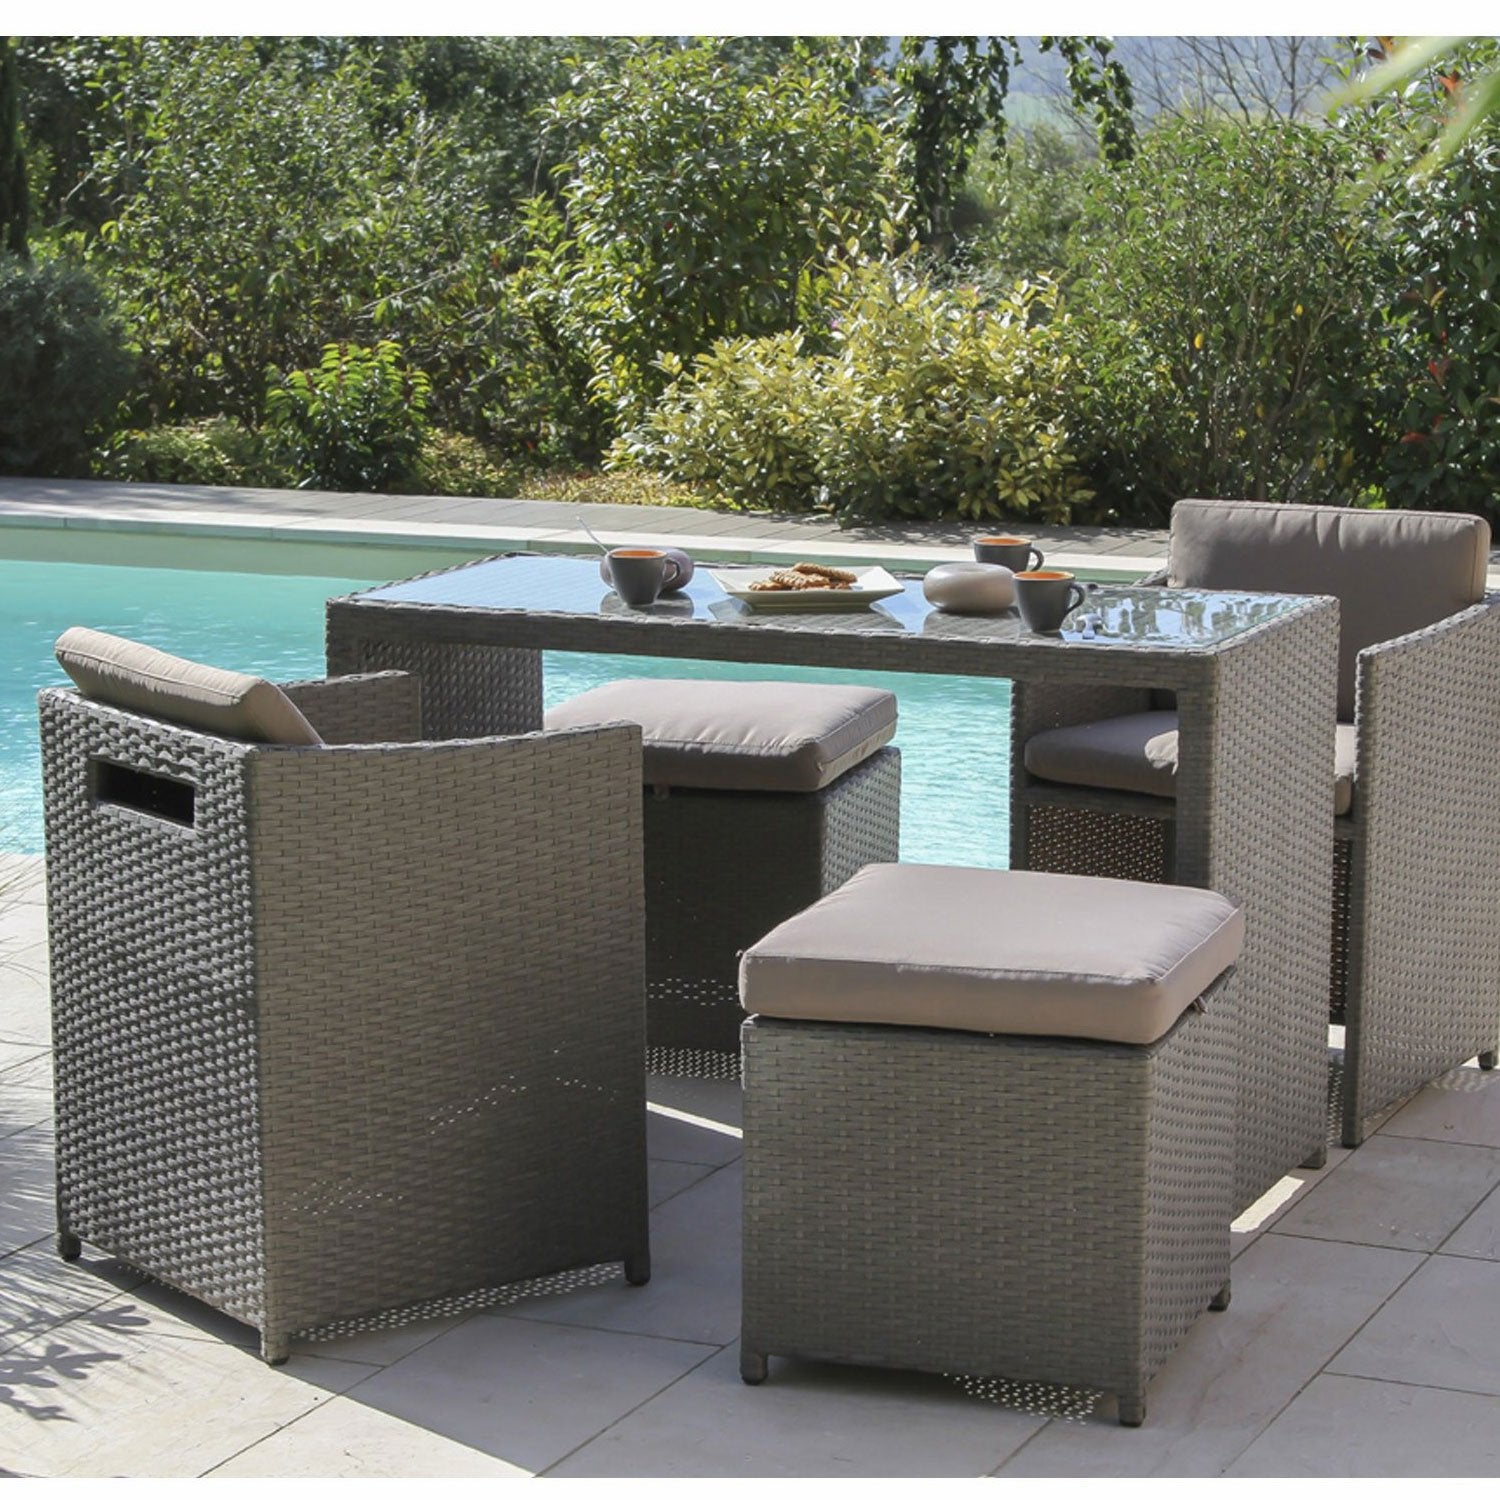 Salon de jardin foggia r sine tress e gris 1 table 2 fauteuils 2 tabourets - Leroy merlin portillon jardin ...